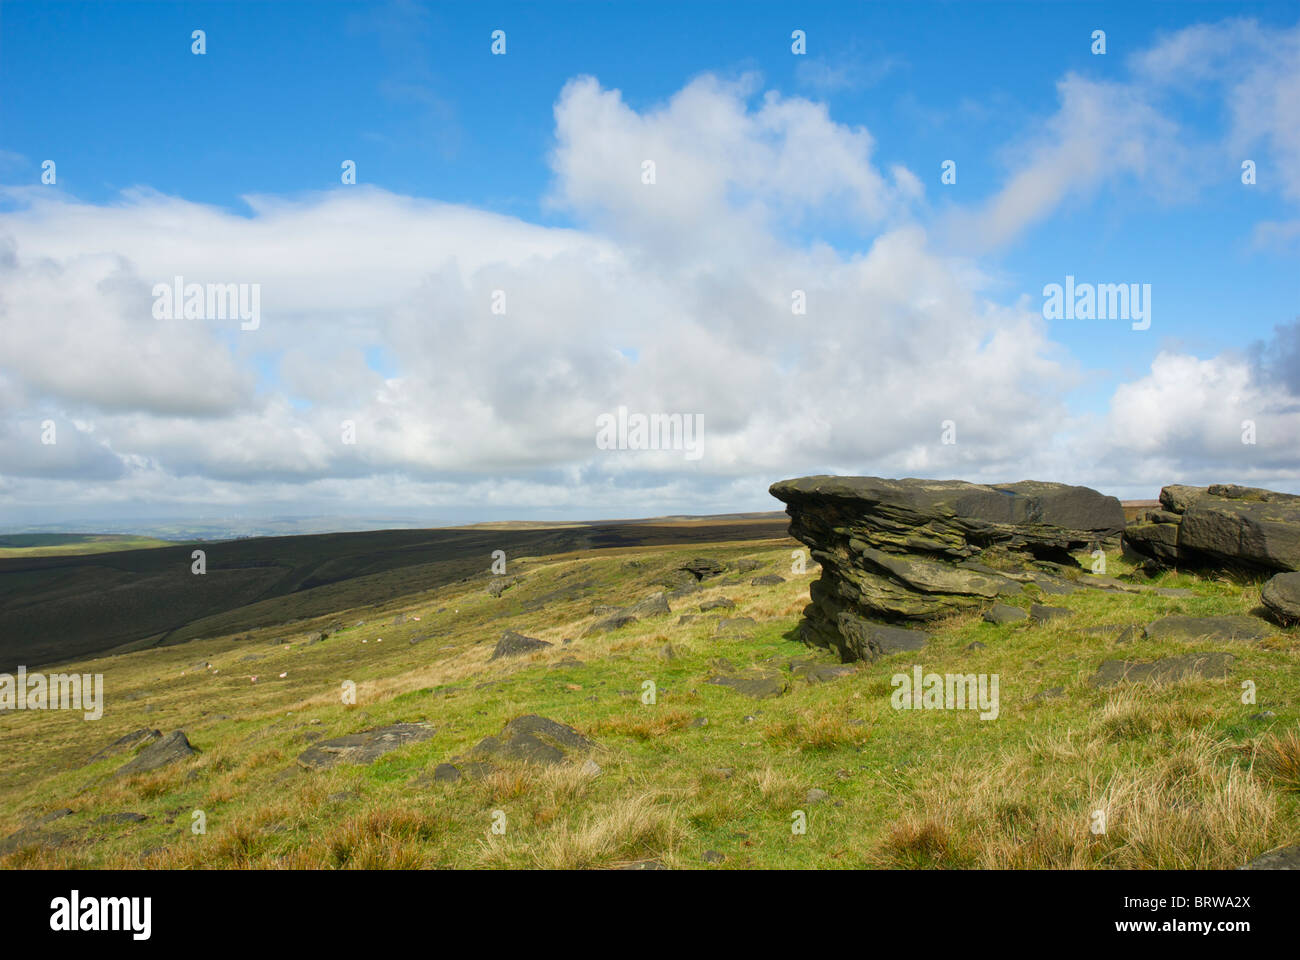 The Pennine Way at Standedge, West Yorkshire, England UK - Stock Image